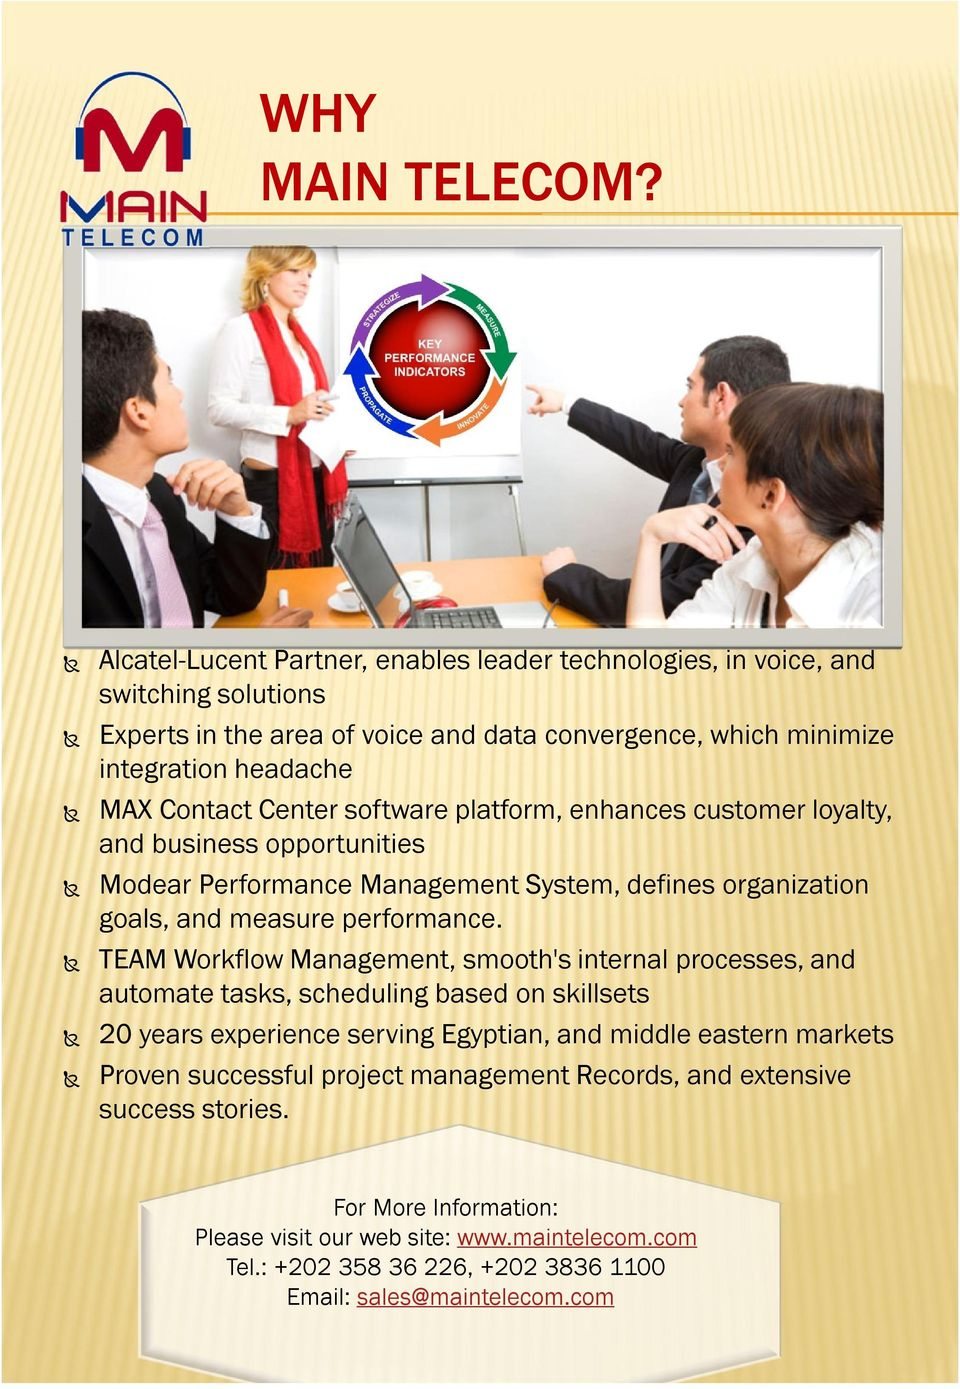 Center software platform, enhances customer loyalty, and business opportunities Modear Performance Management System, defines organization goals, and measure performance.